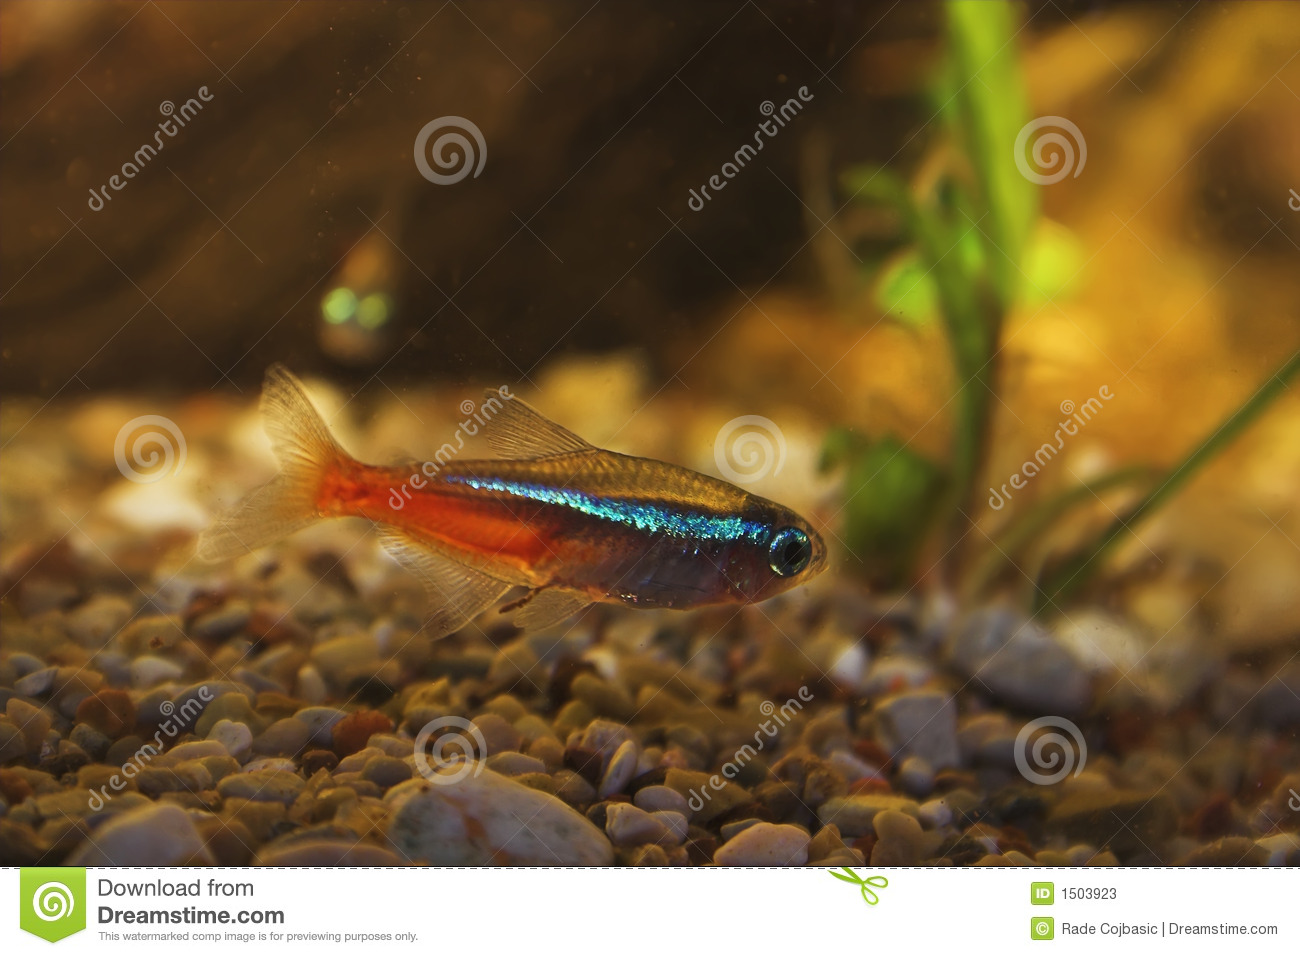 Neon tetra in aquarium stock photos image 1503923 for Neon fish tank